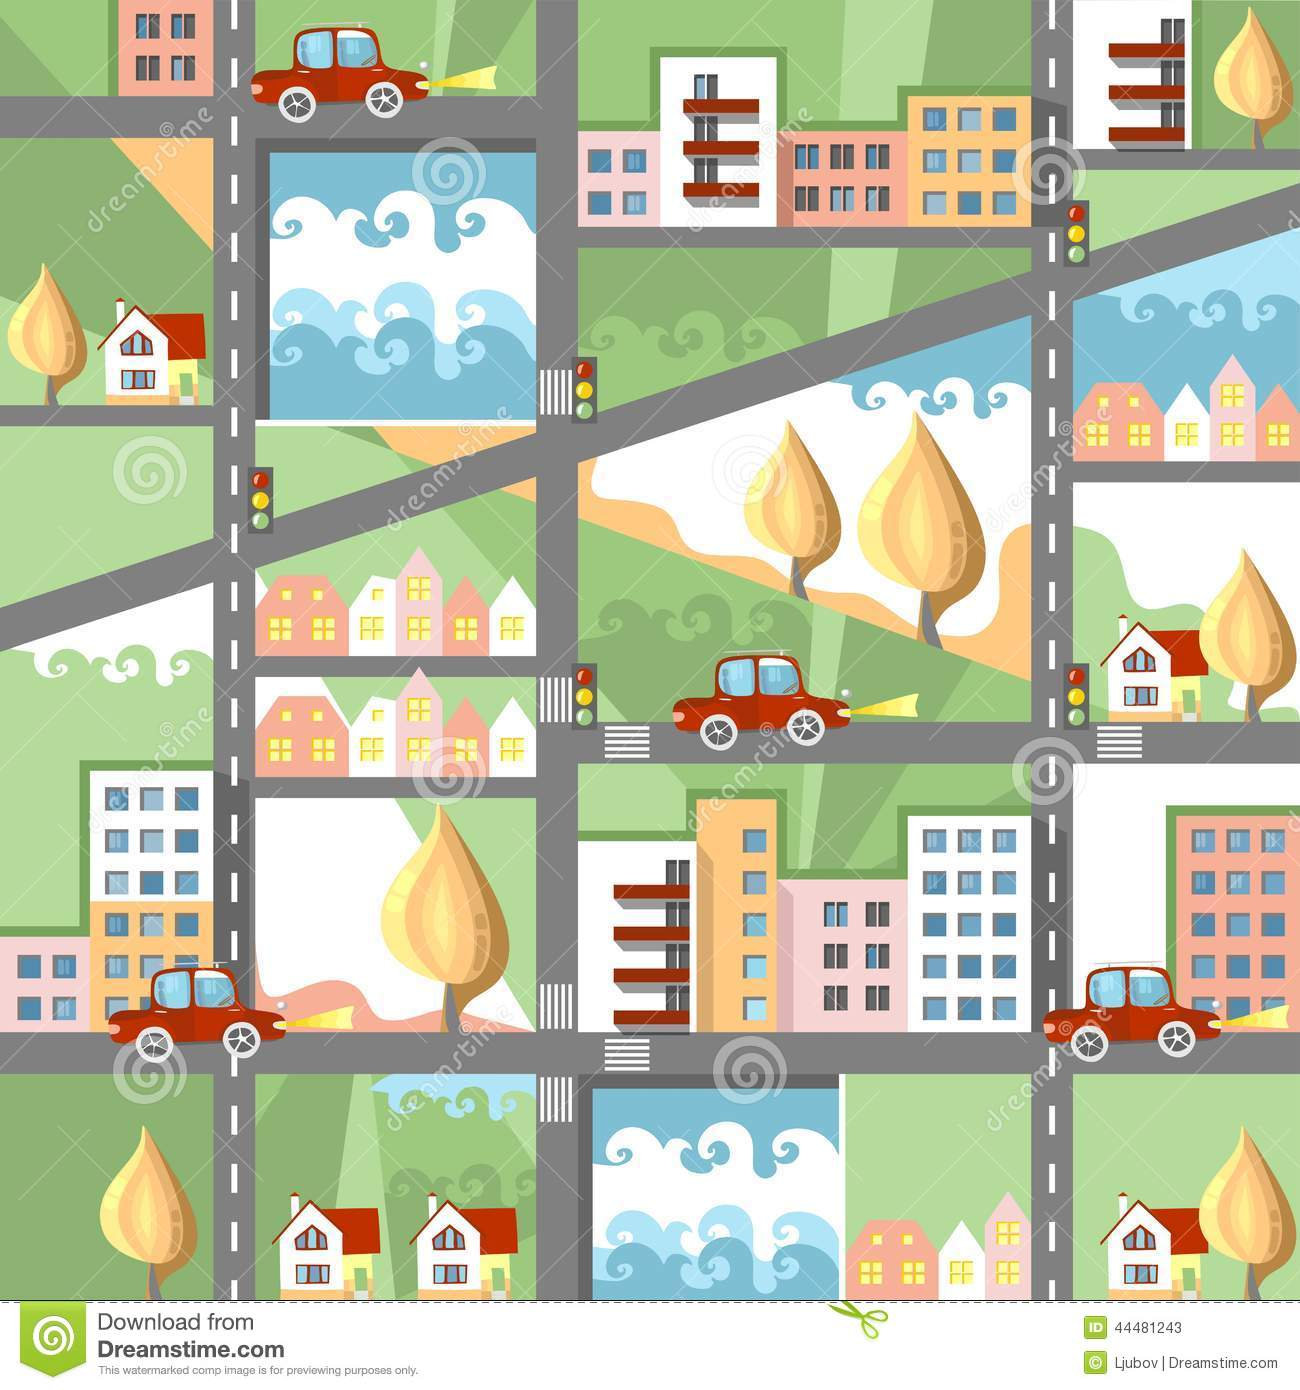 google maps ruler with Stock Illustration Cute Cartoon City Map Houses Cars Image44481243 on How To Make A Perfect Mind Map furthermore G 6l0gbanbardkfg0c88pqua0 together with Mount Gerizim as well Details besides Google 20chrome 202014 20free.